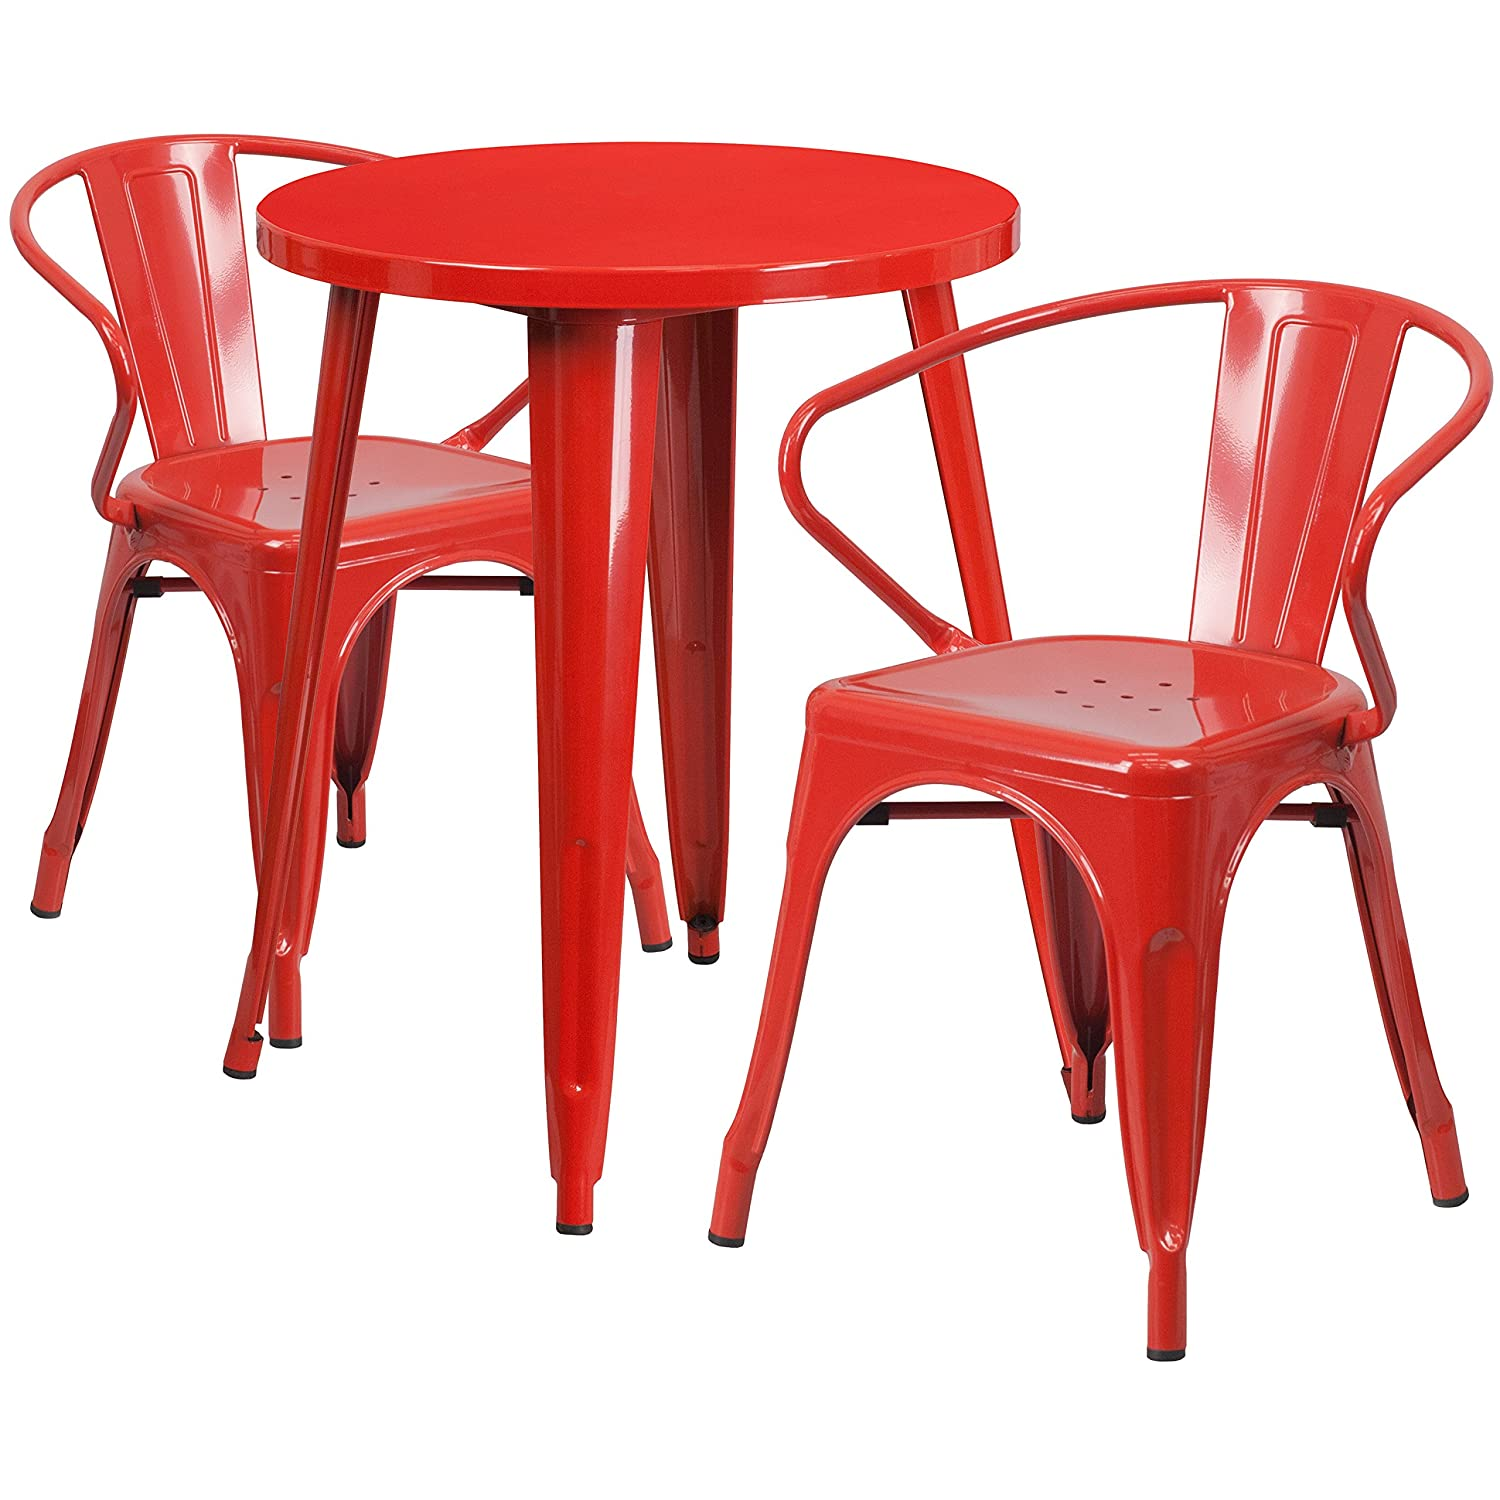 Flash Furniture 24 Round Red Metal Indoor-Outdoor Table Set with 2 Arm Chairs